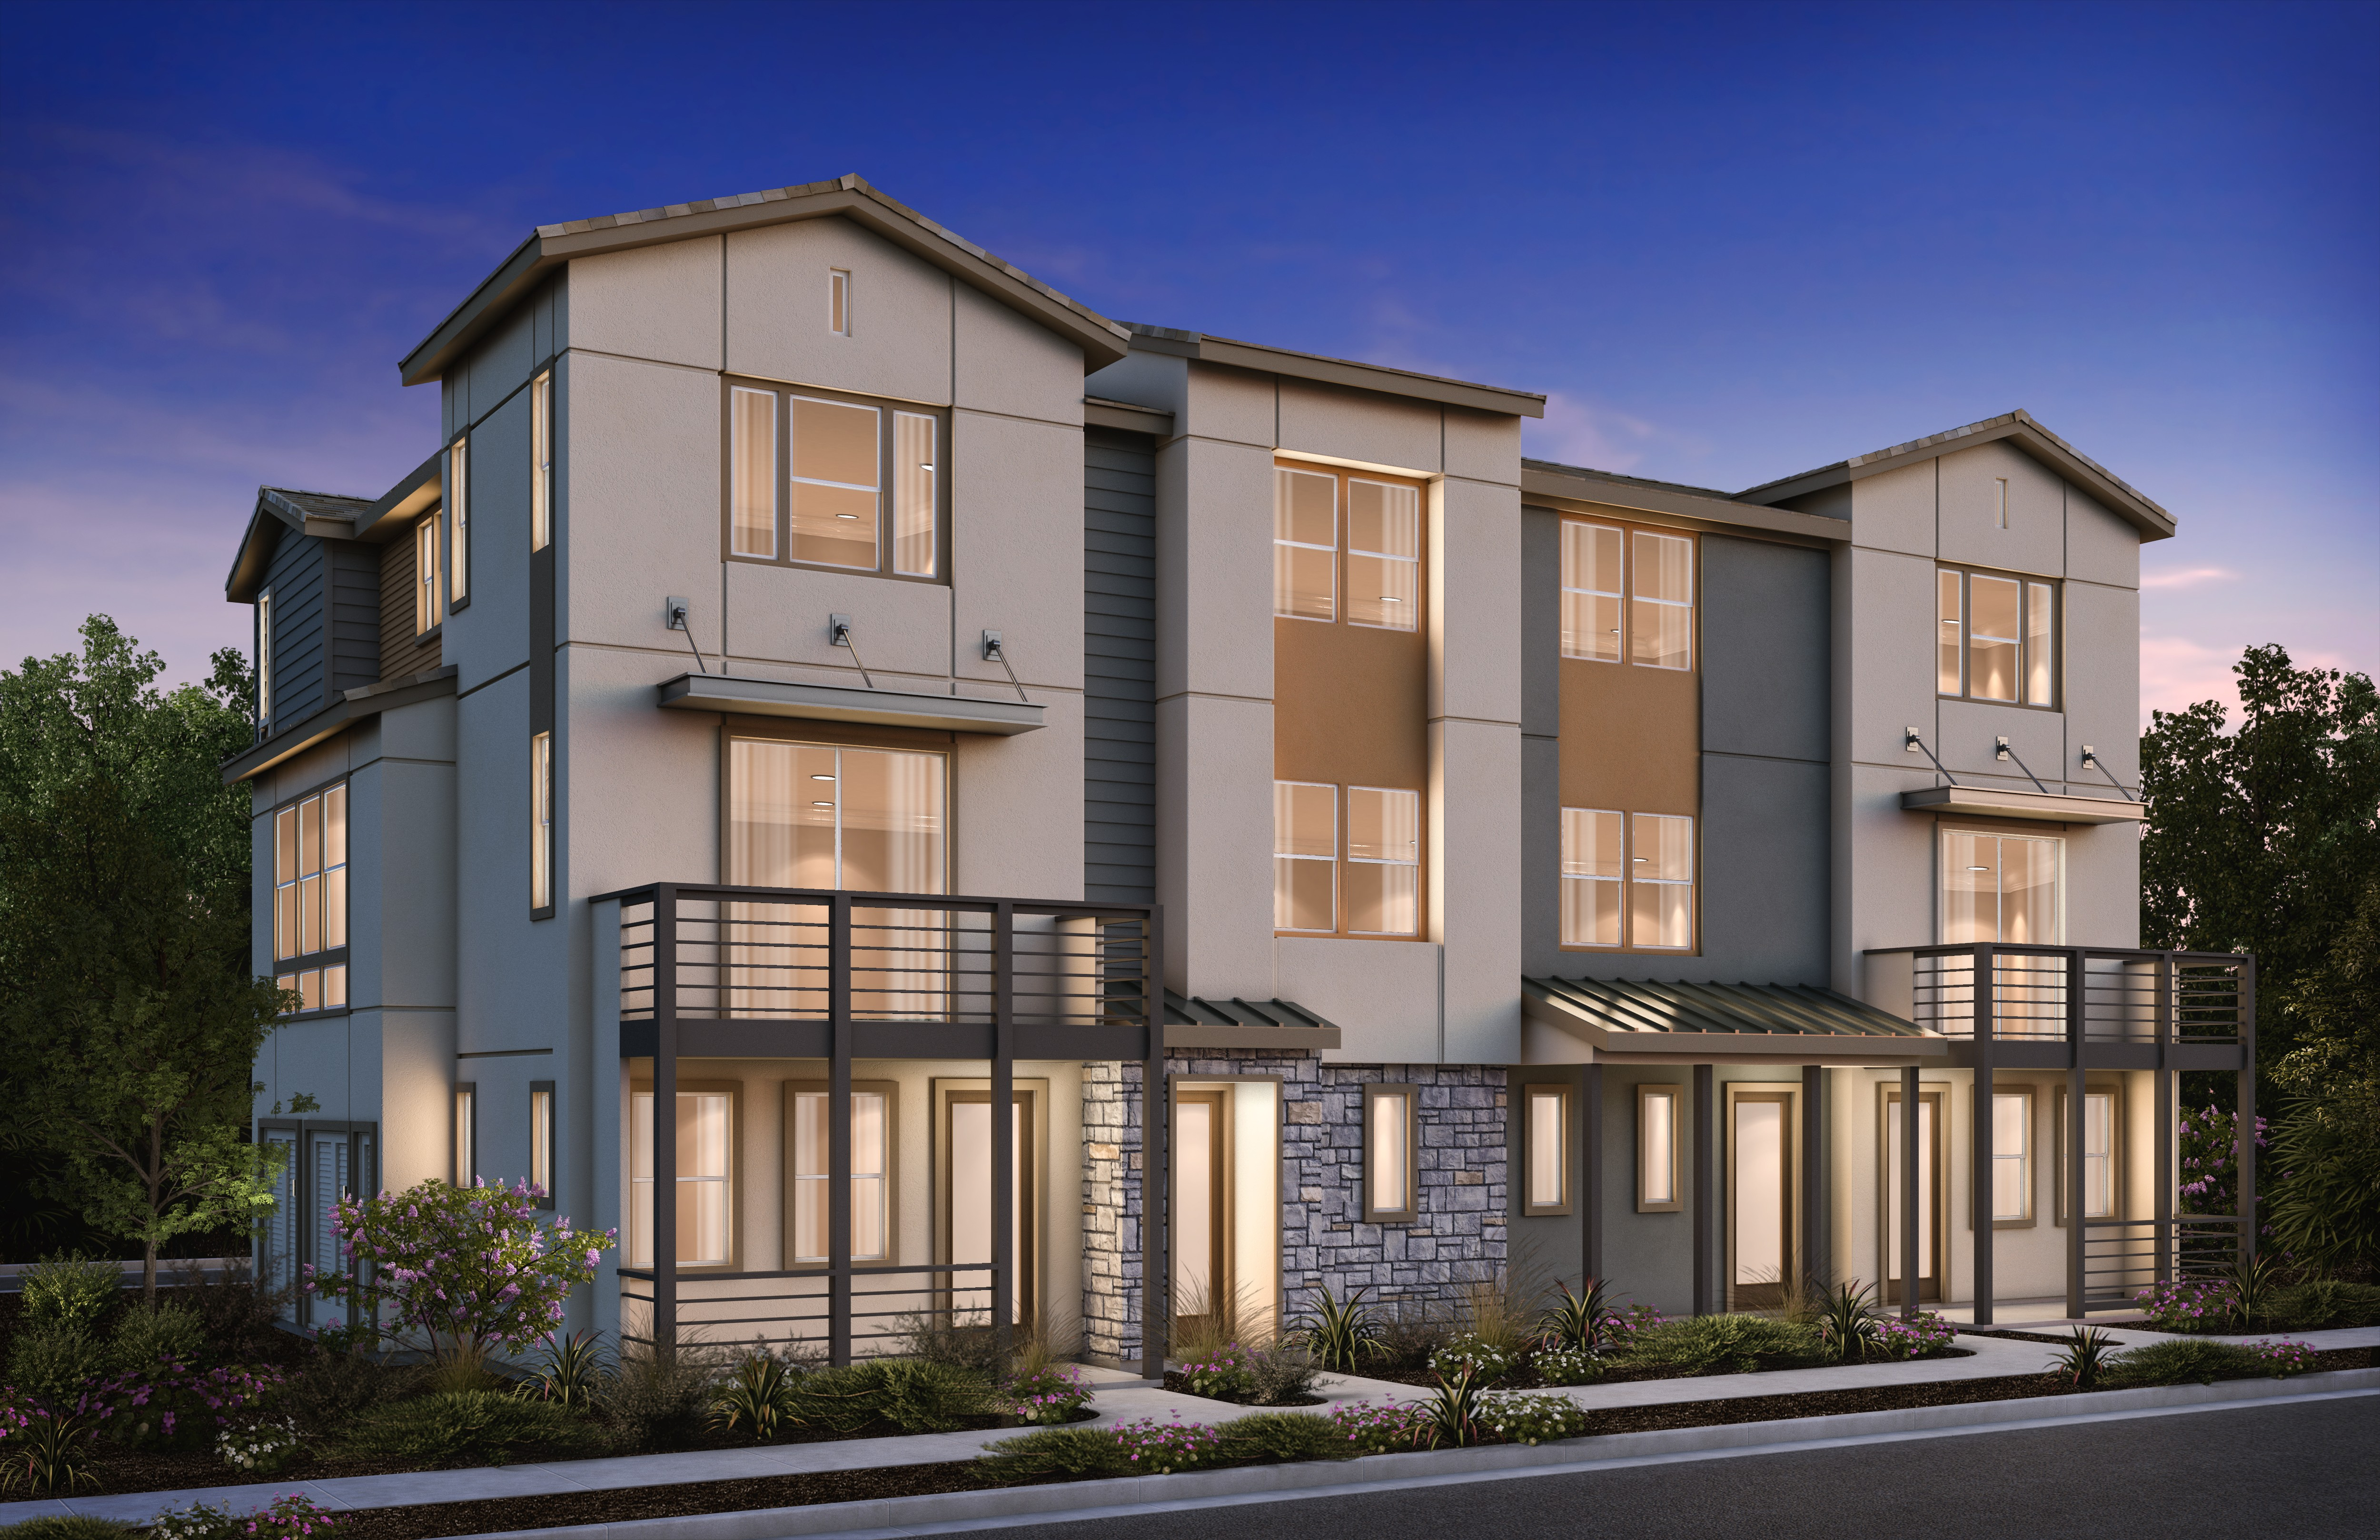 New Homes Milpitas